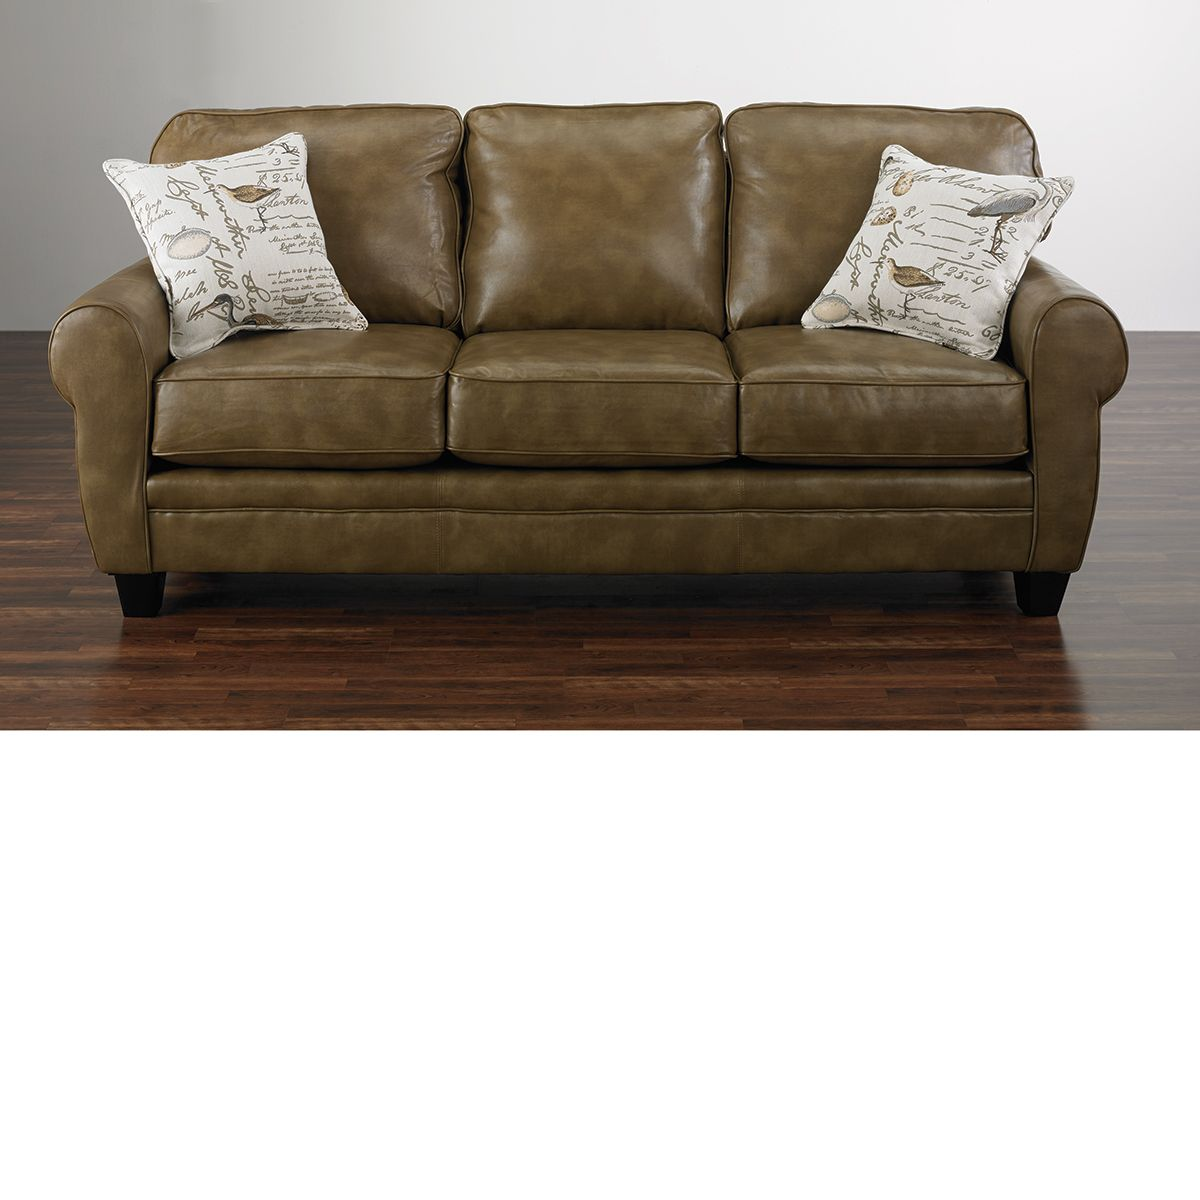 custom made leather sectional sofas audrey sofa bed jennifer convertible the dump furniture handmade for home